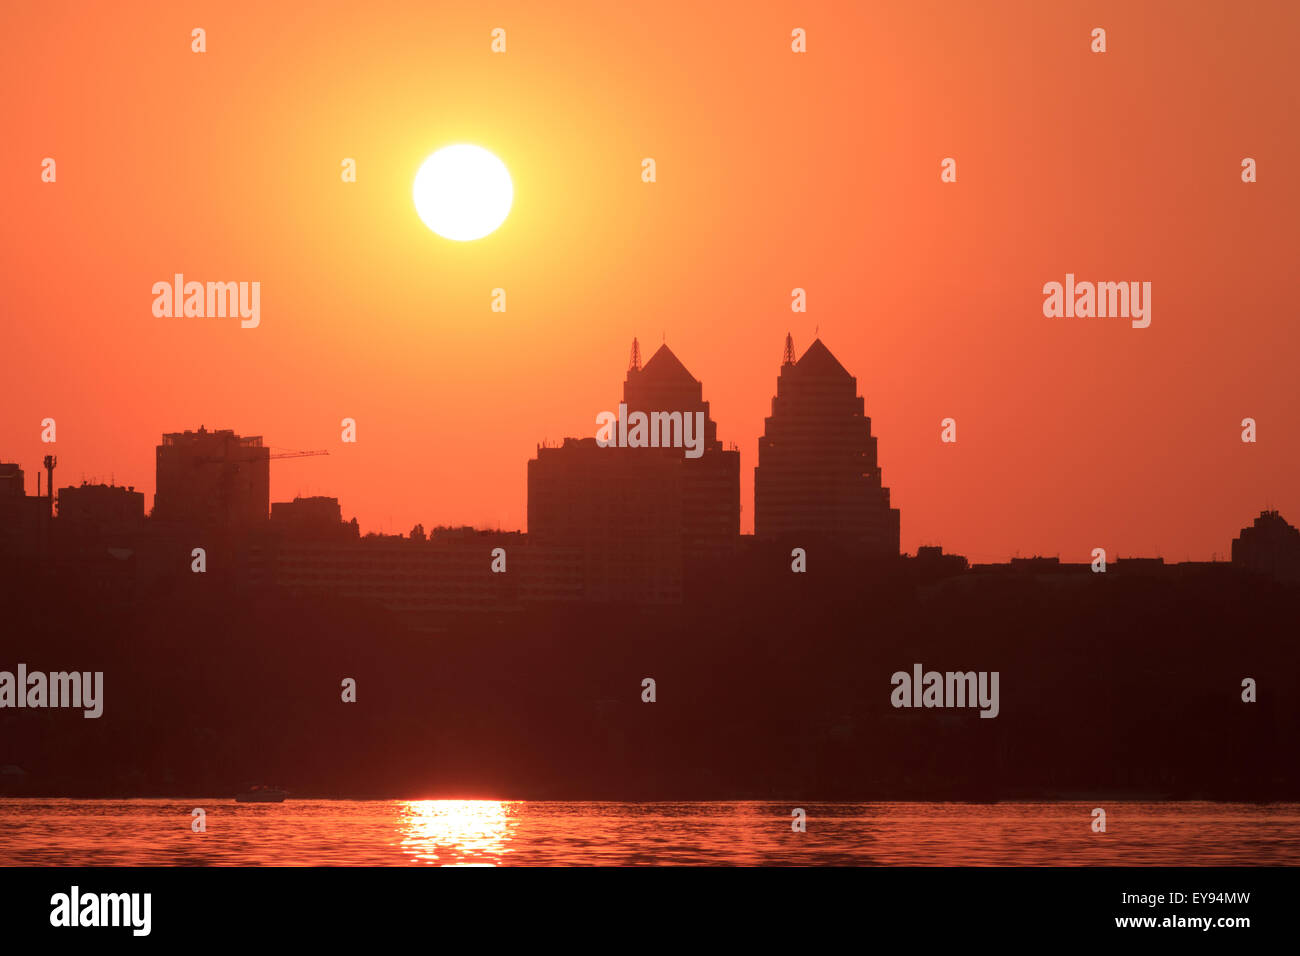 Urban sunset in Dnipropetrovsk - Stock Image